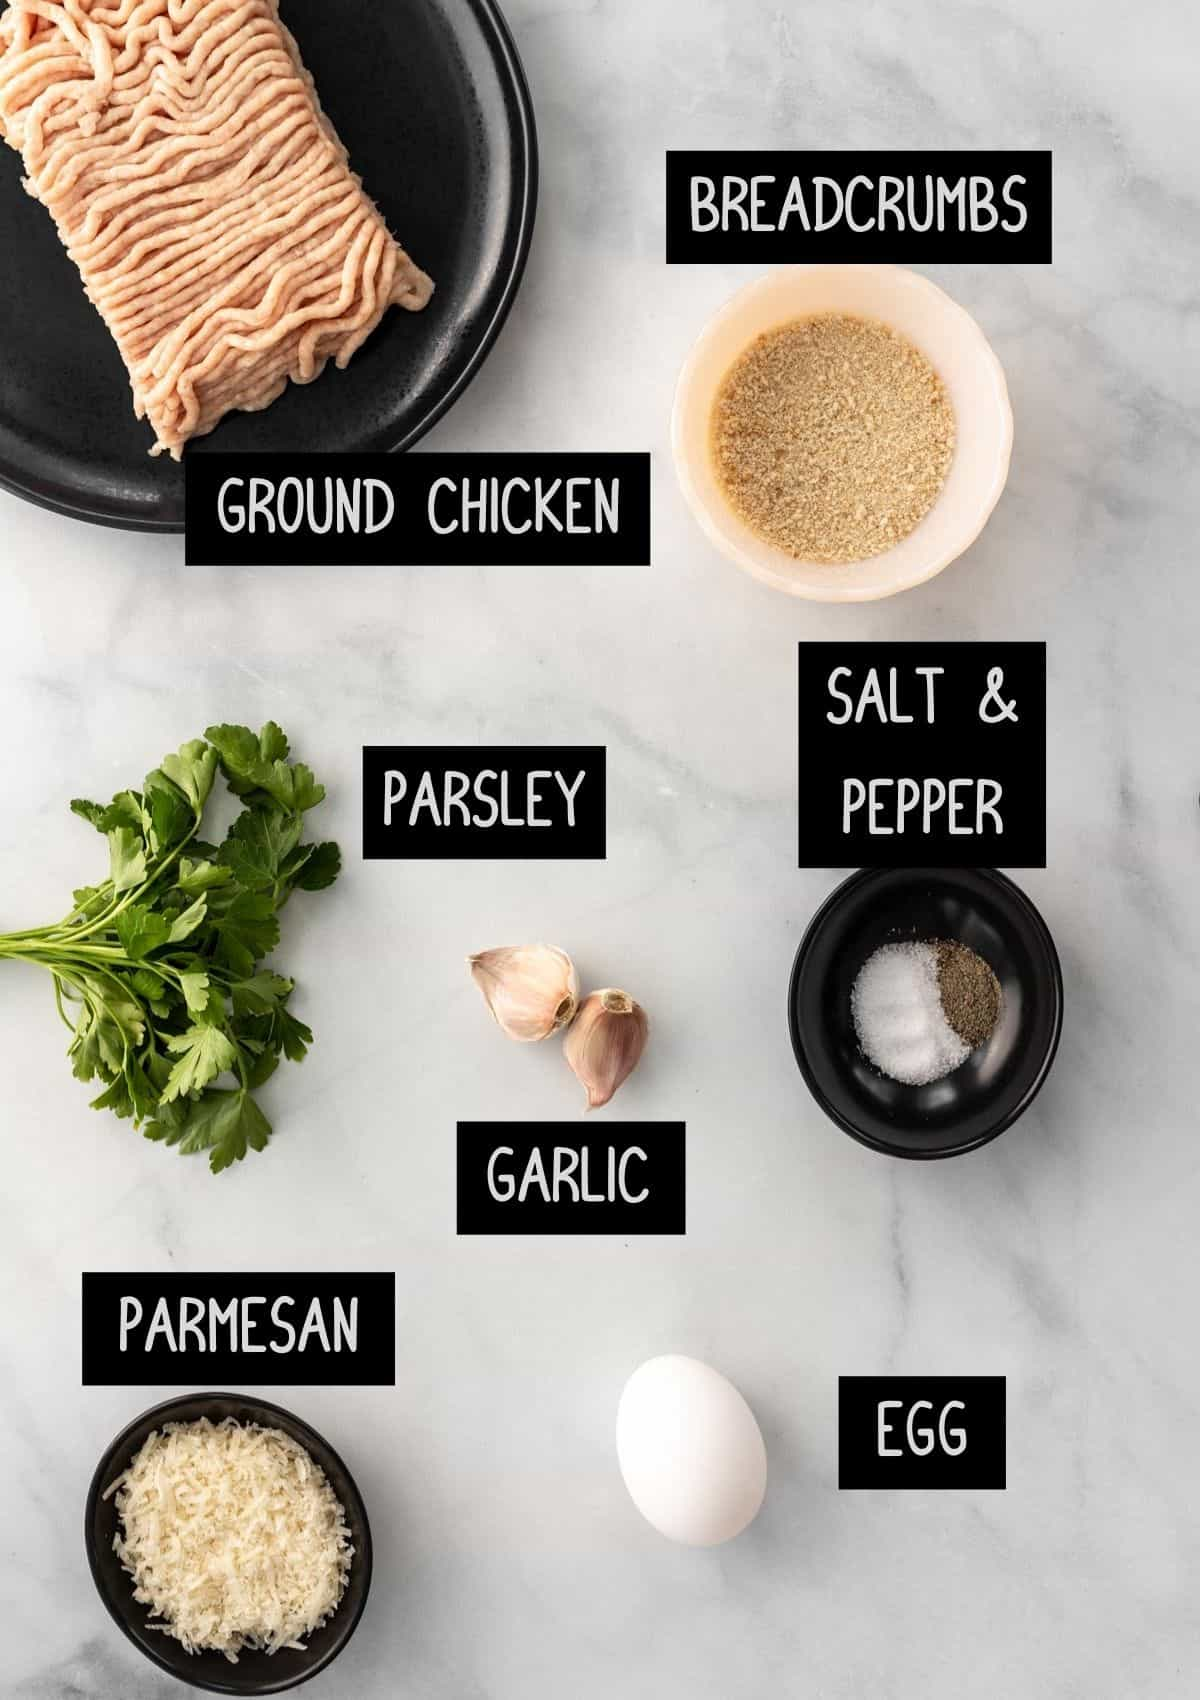 Labelled ingredients for the chicken meatballs (see recipe for details).